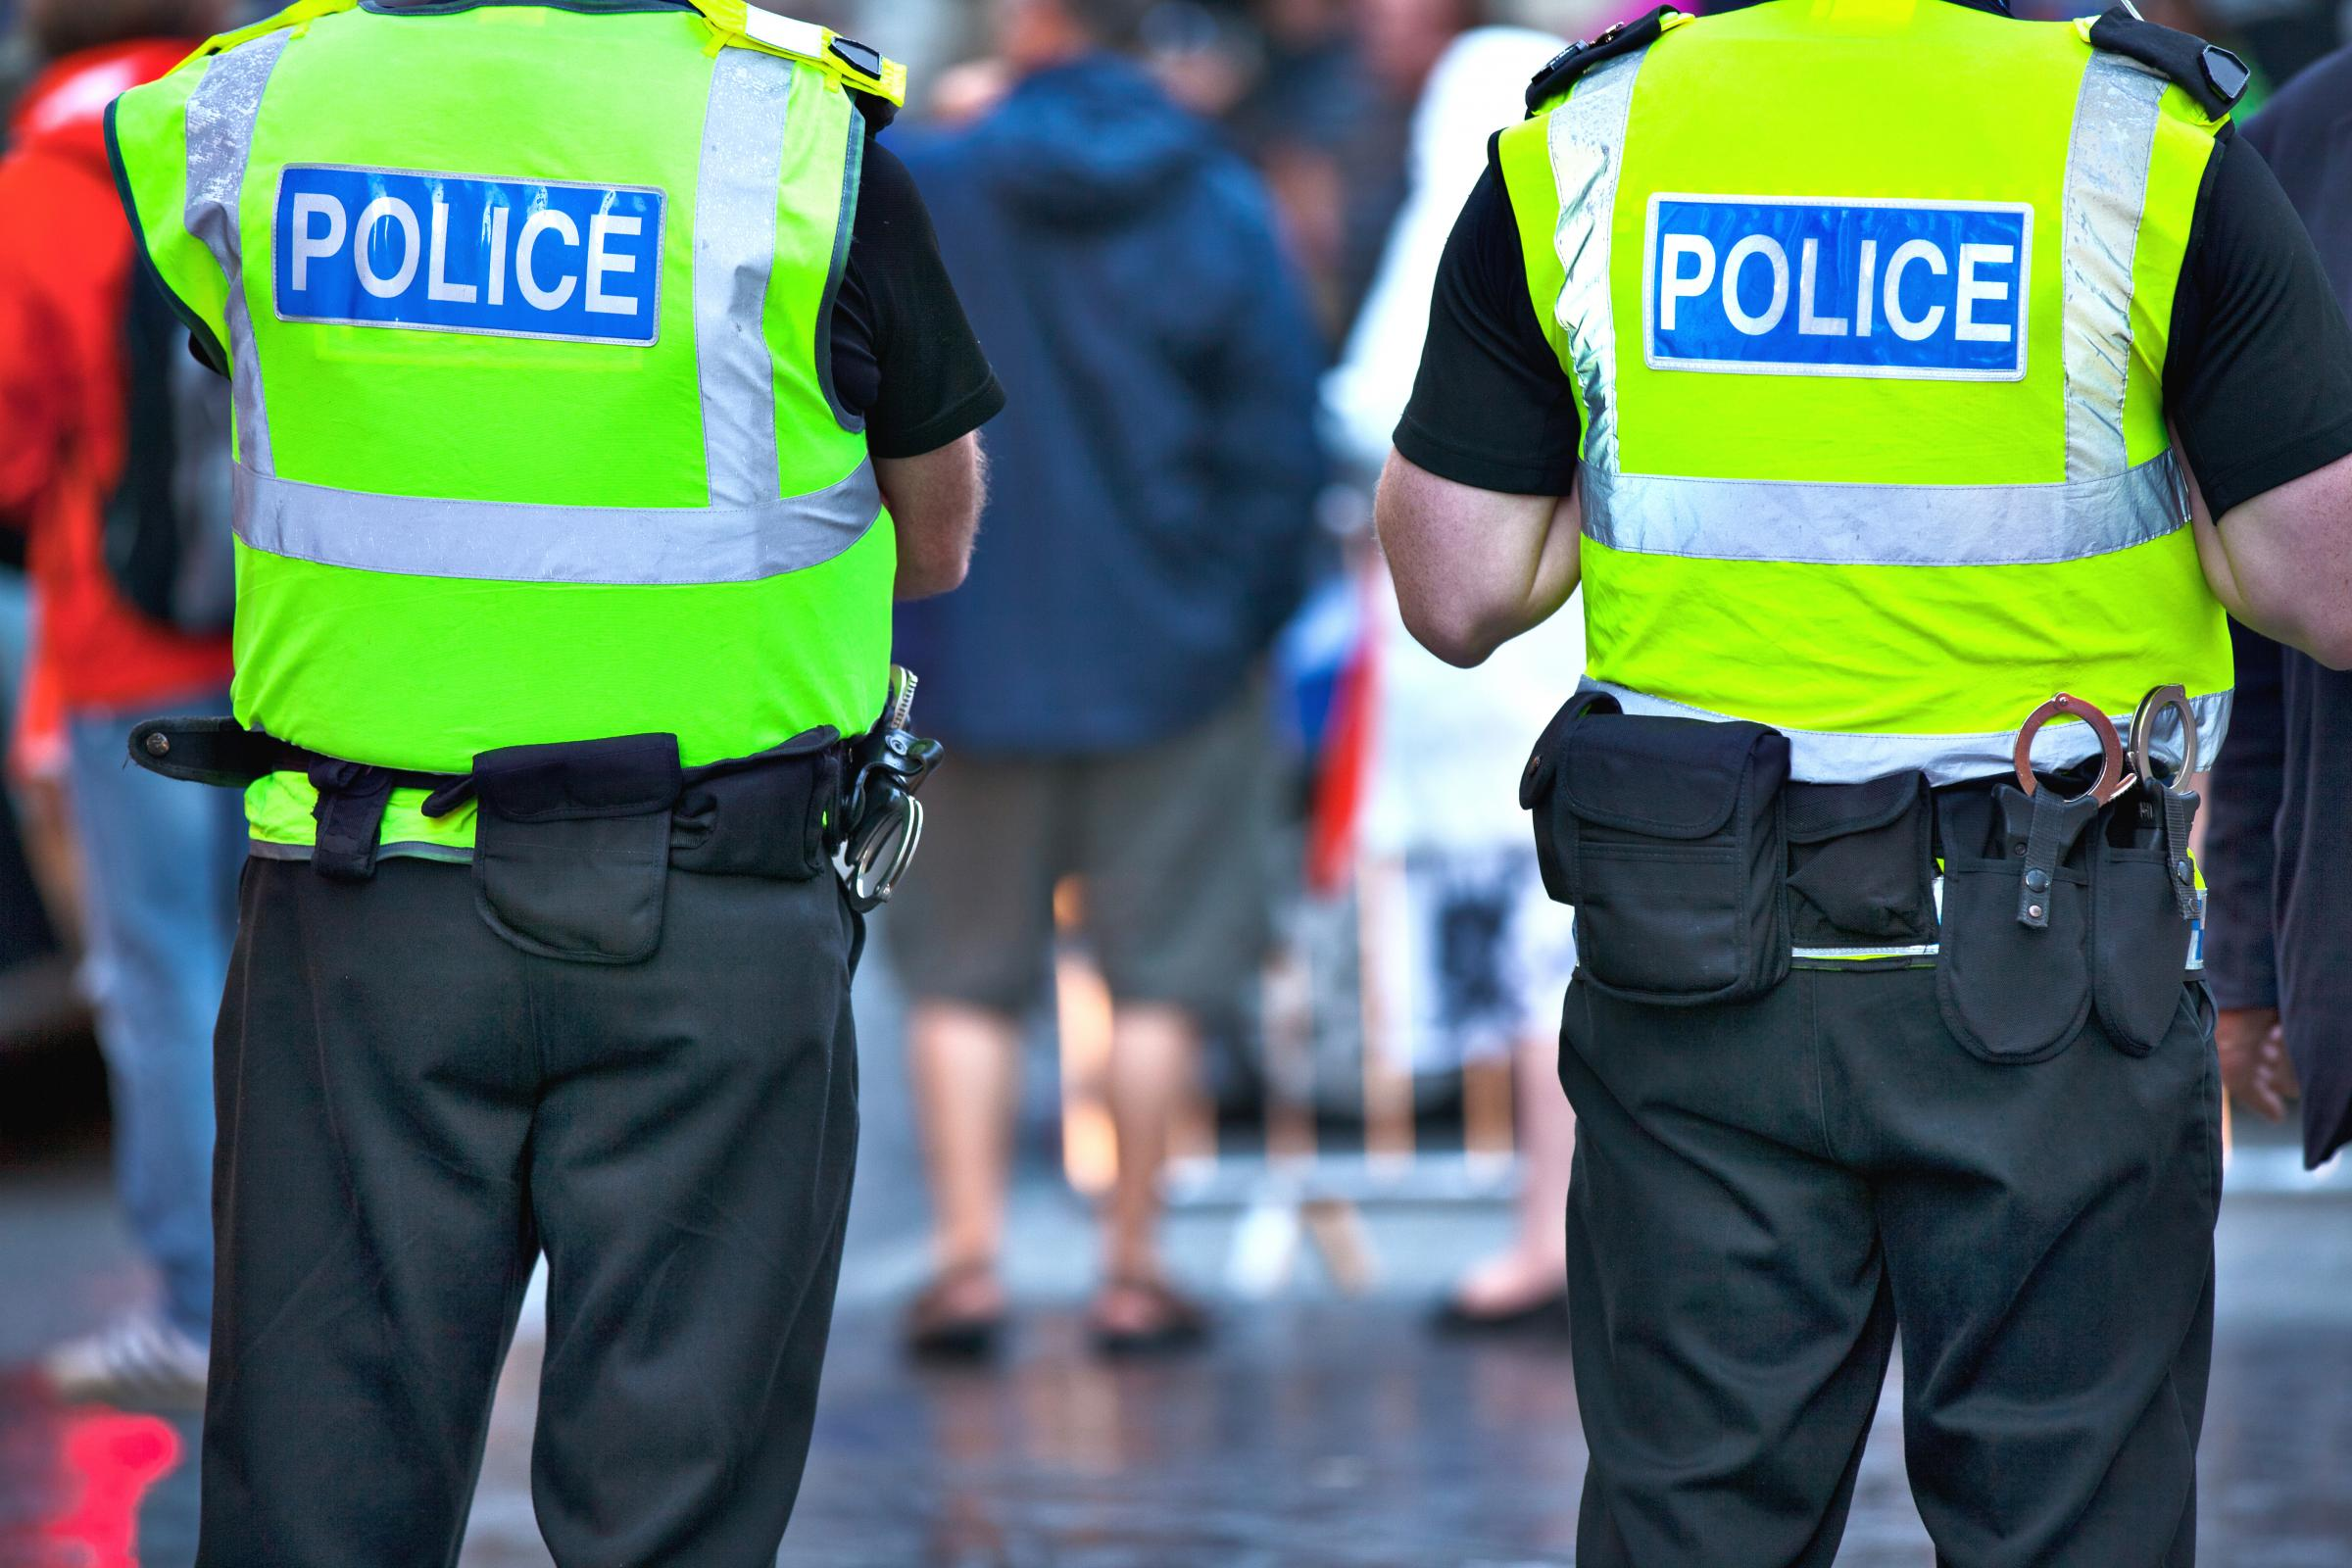 POLICE: The number of officers assaulted over the festive period revealed